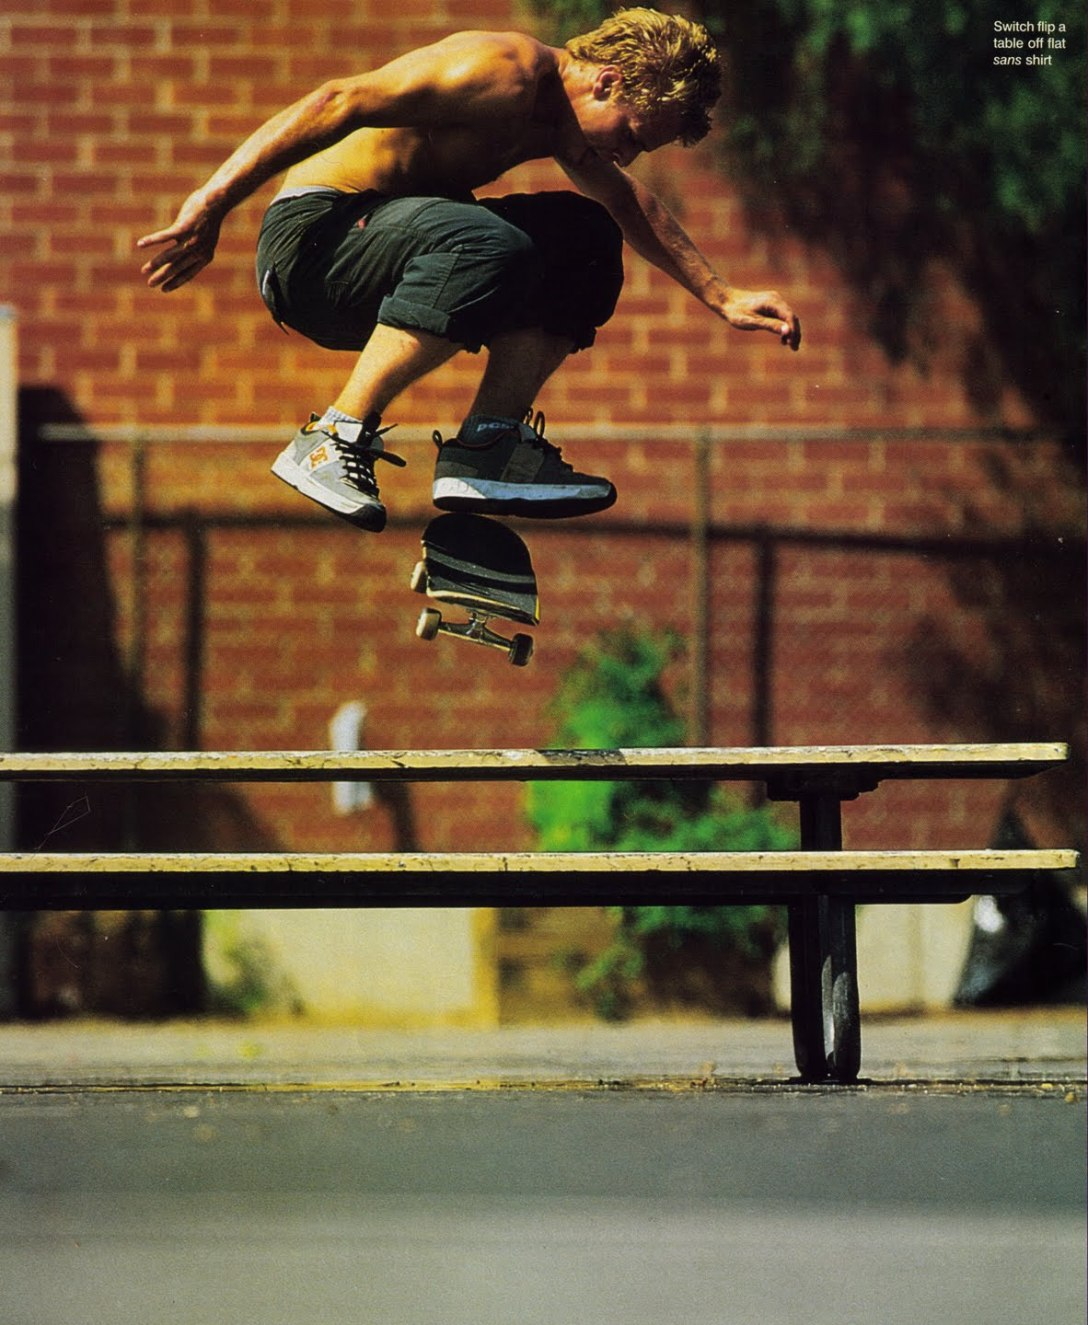 Anthony Van Engelen Switch Kickflip Picnic Table scan courtesy of The Chrome Ball Incident Speedway Mag Greg Hunt Interview